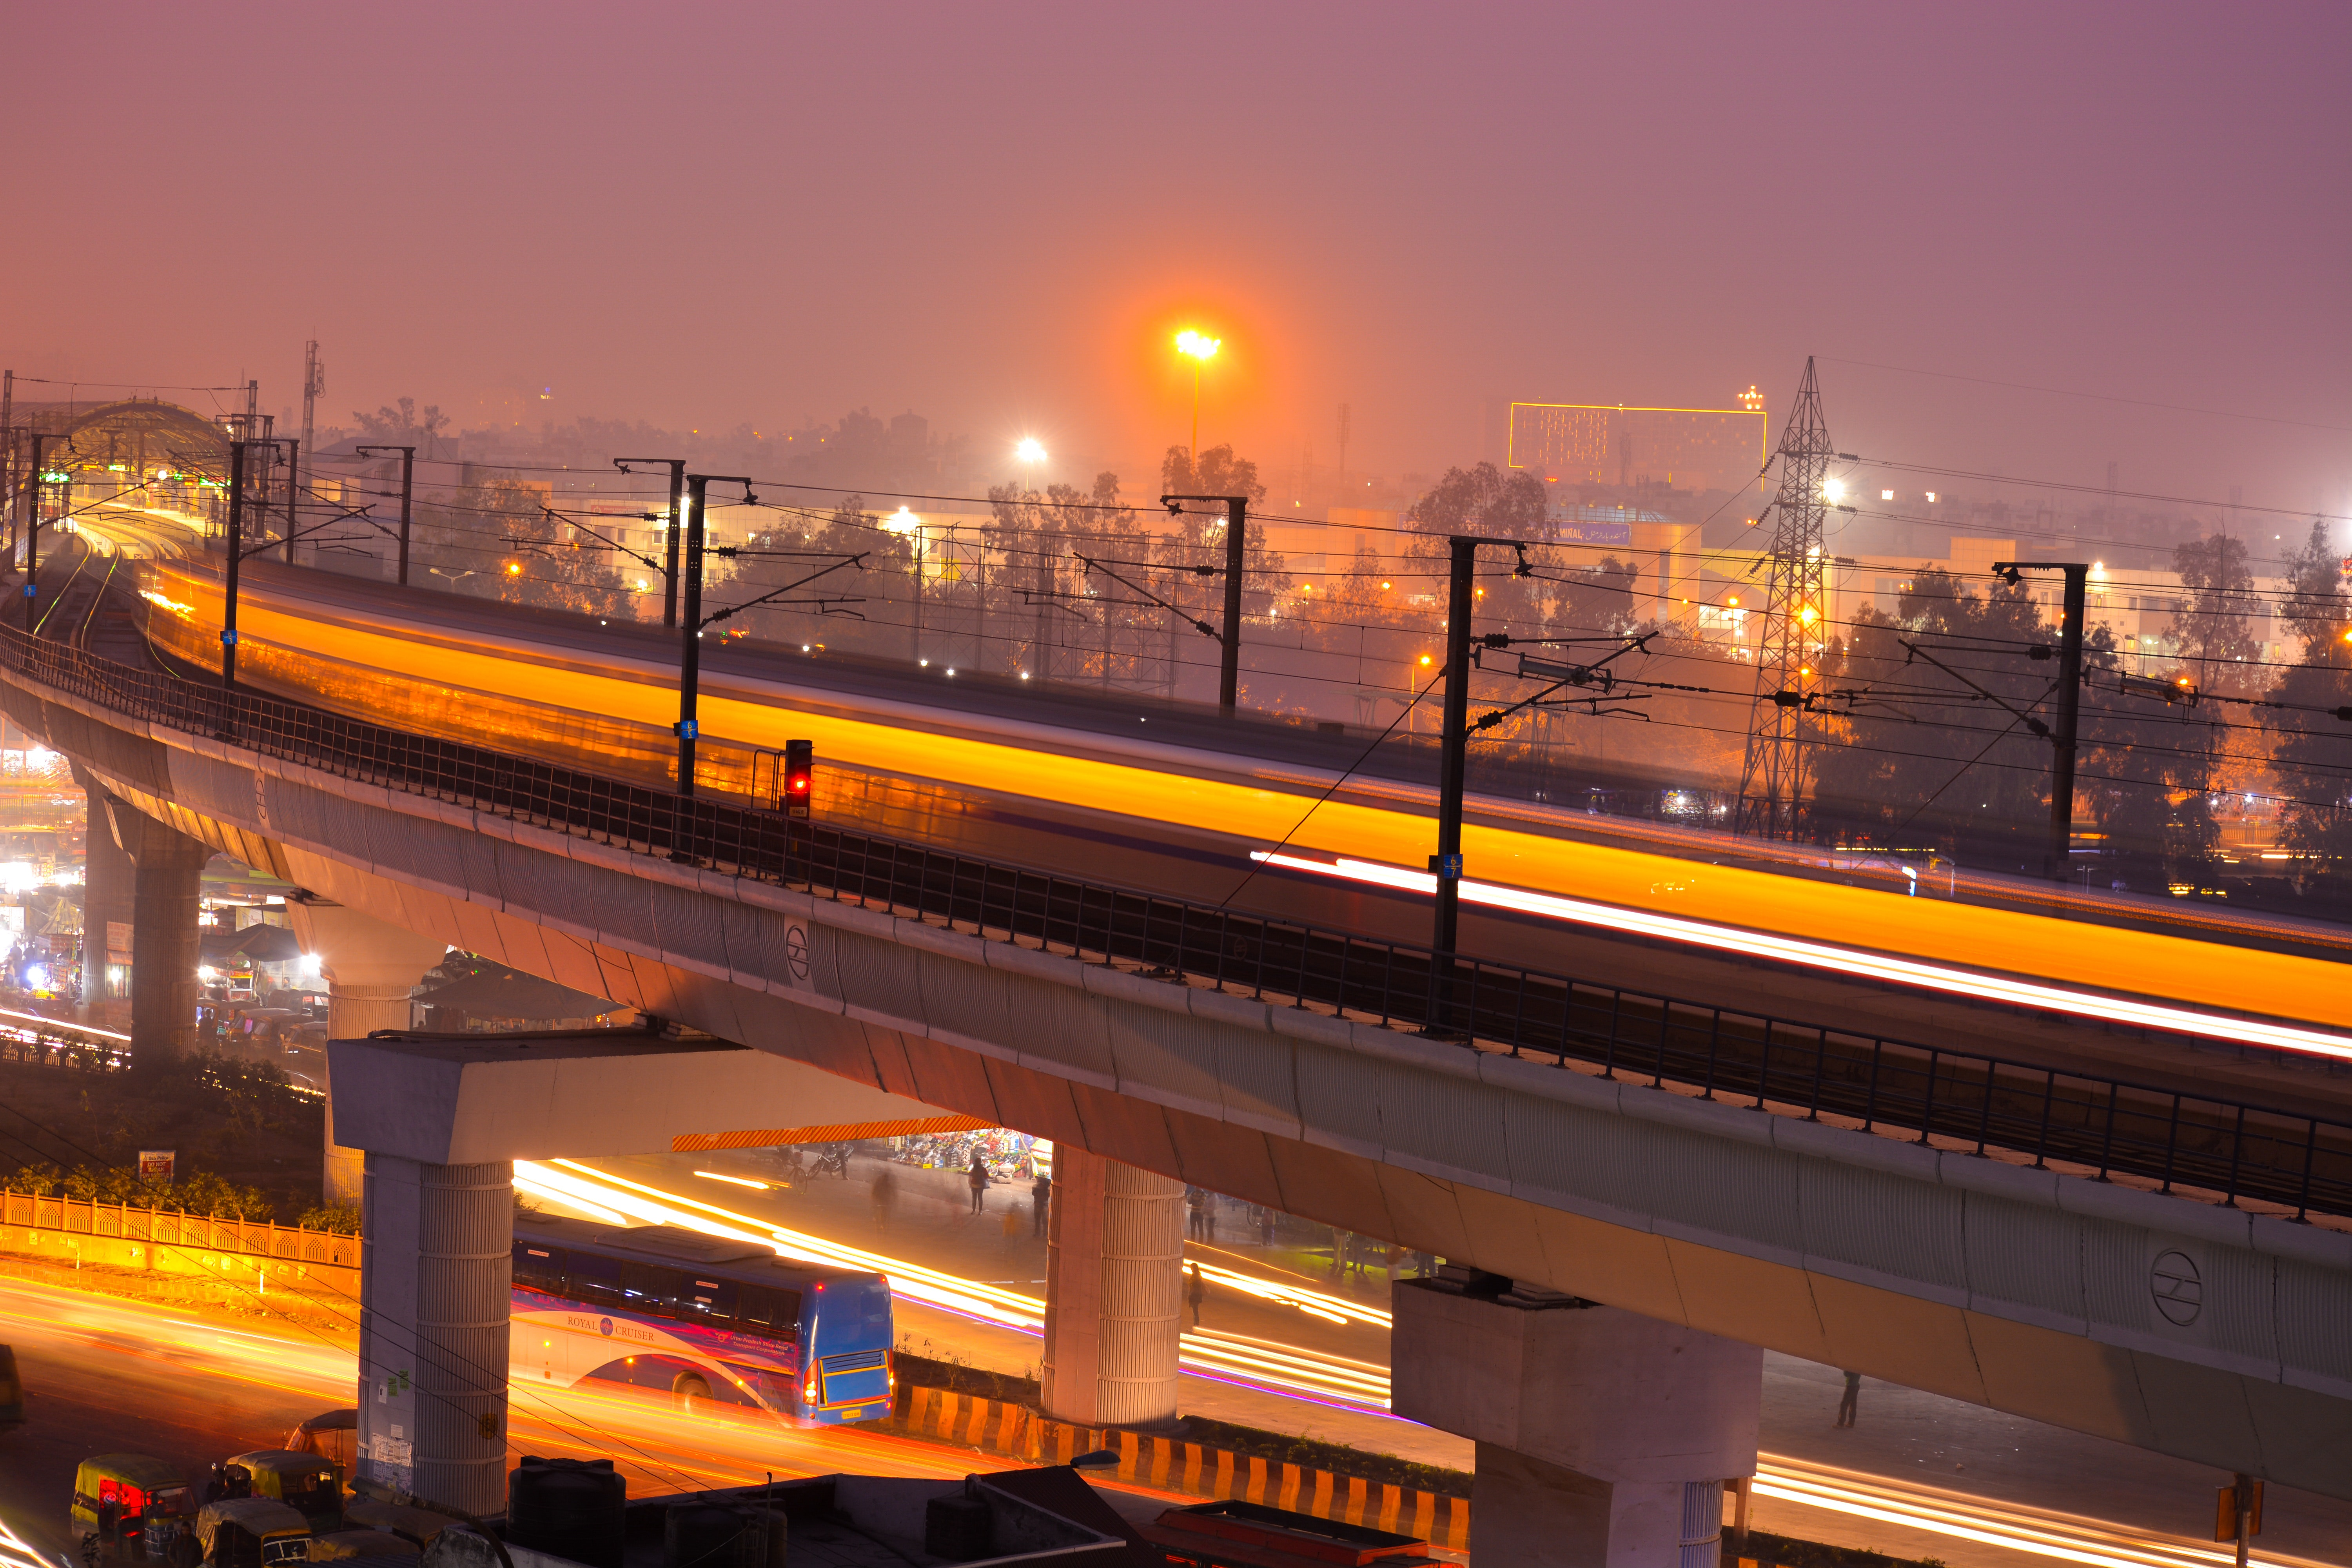 Timelapse Photo of Train, Bridge, Metro, Travel, Transportation system, HQ Photo